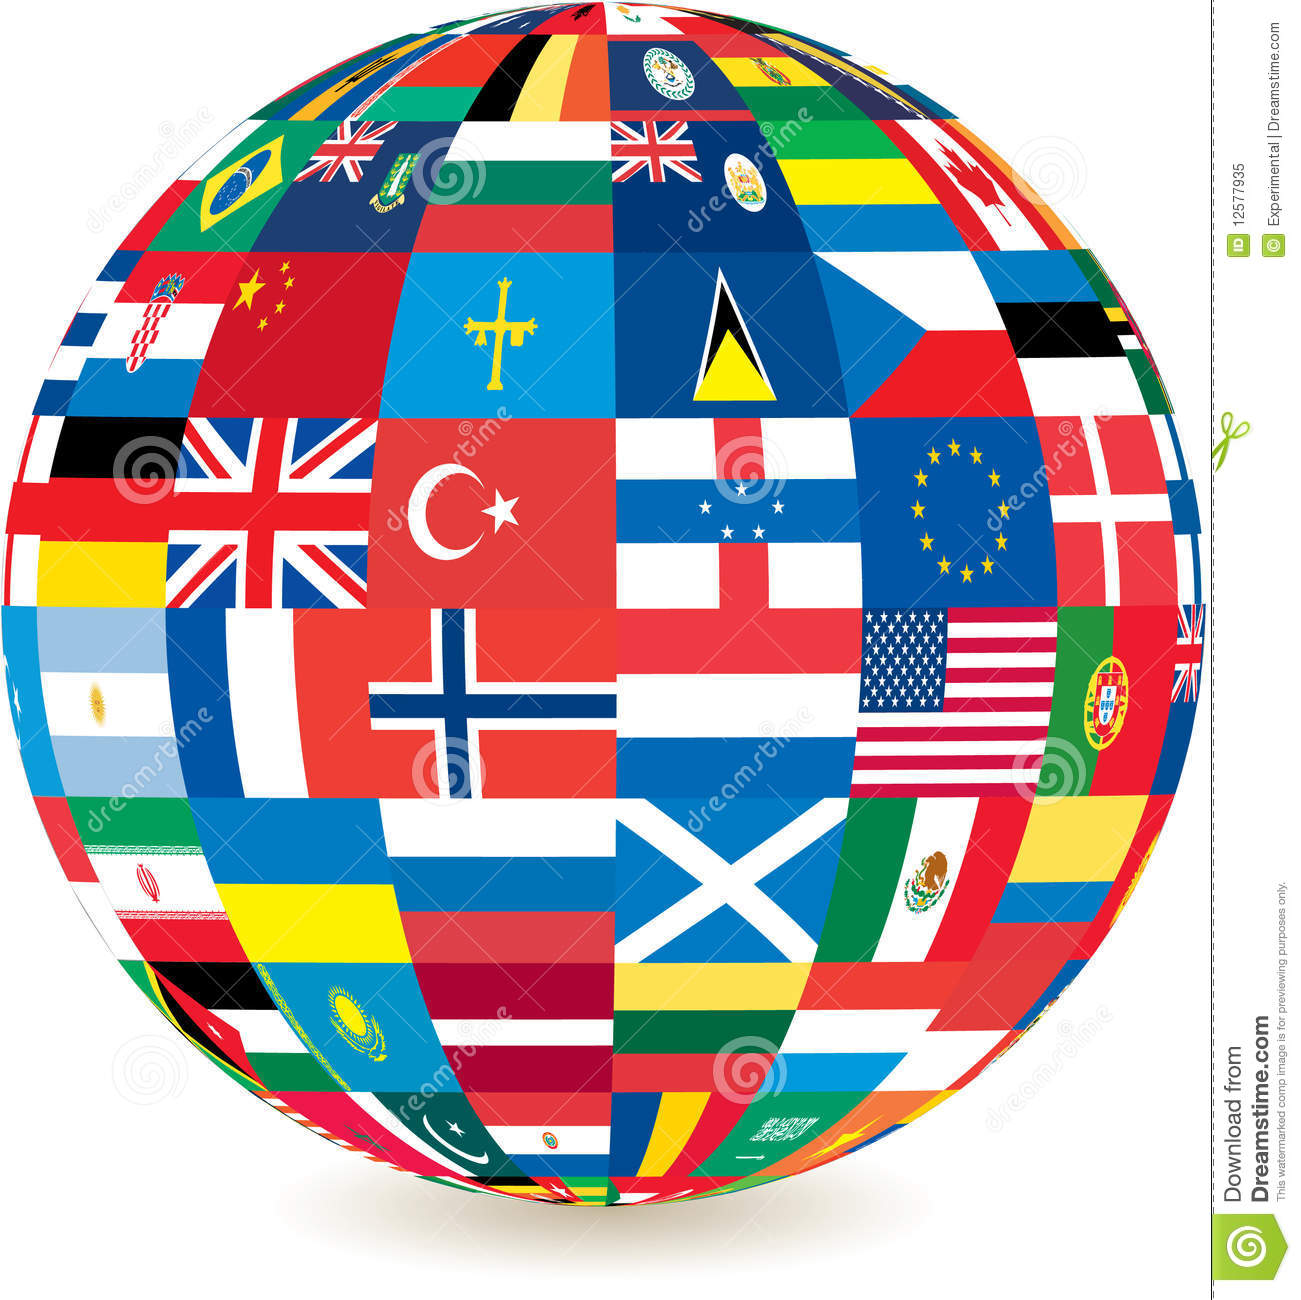 Globe Of World Countries' Flags Royalty Free Stock Photo.